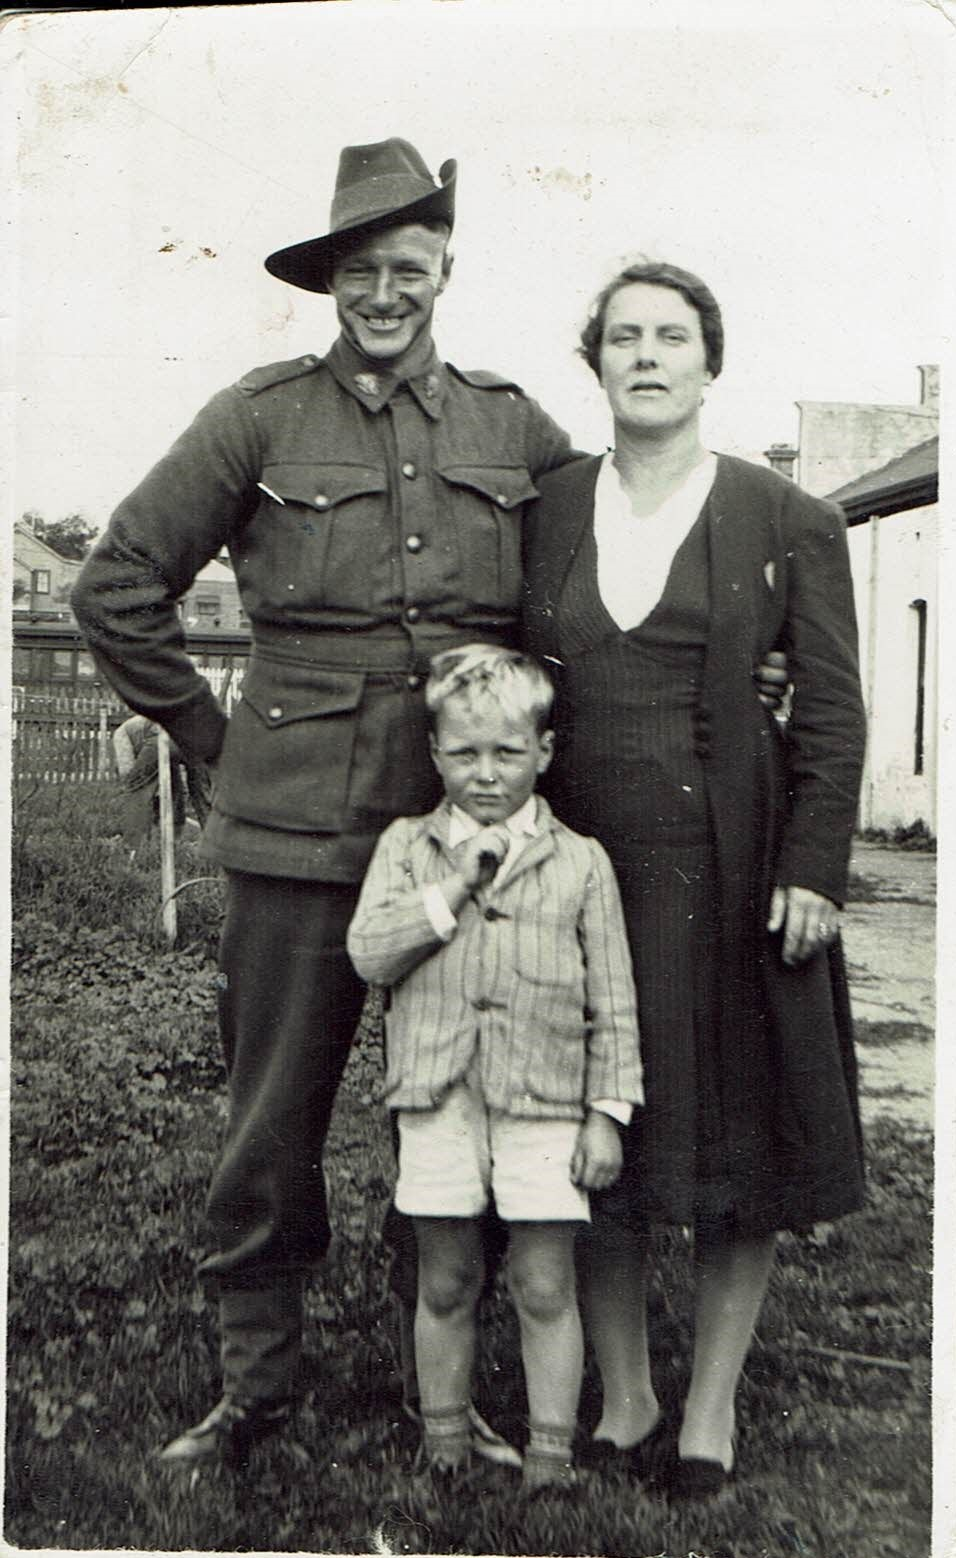 Hugh Dutton with his wife Emily and son Alan